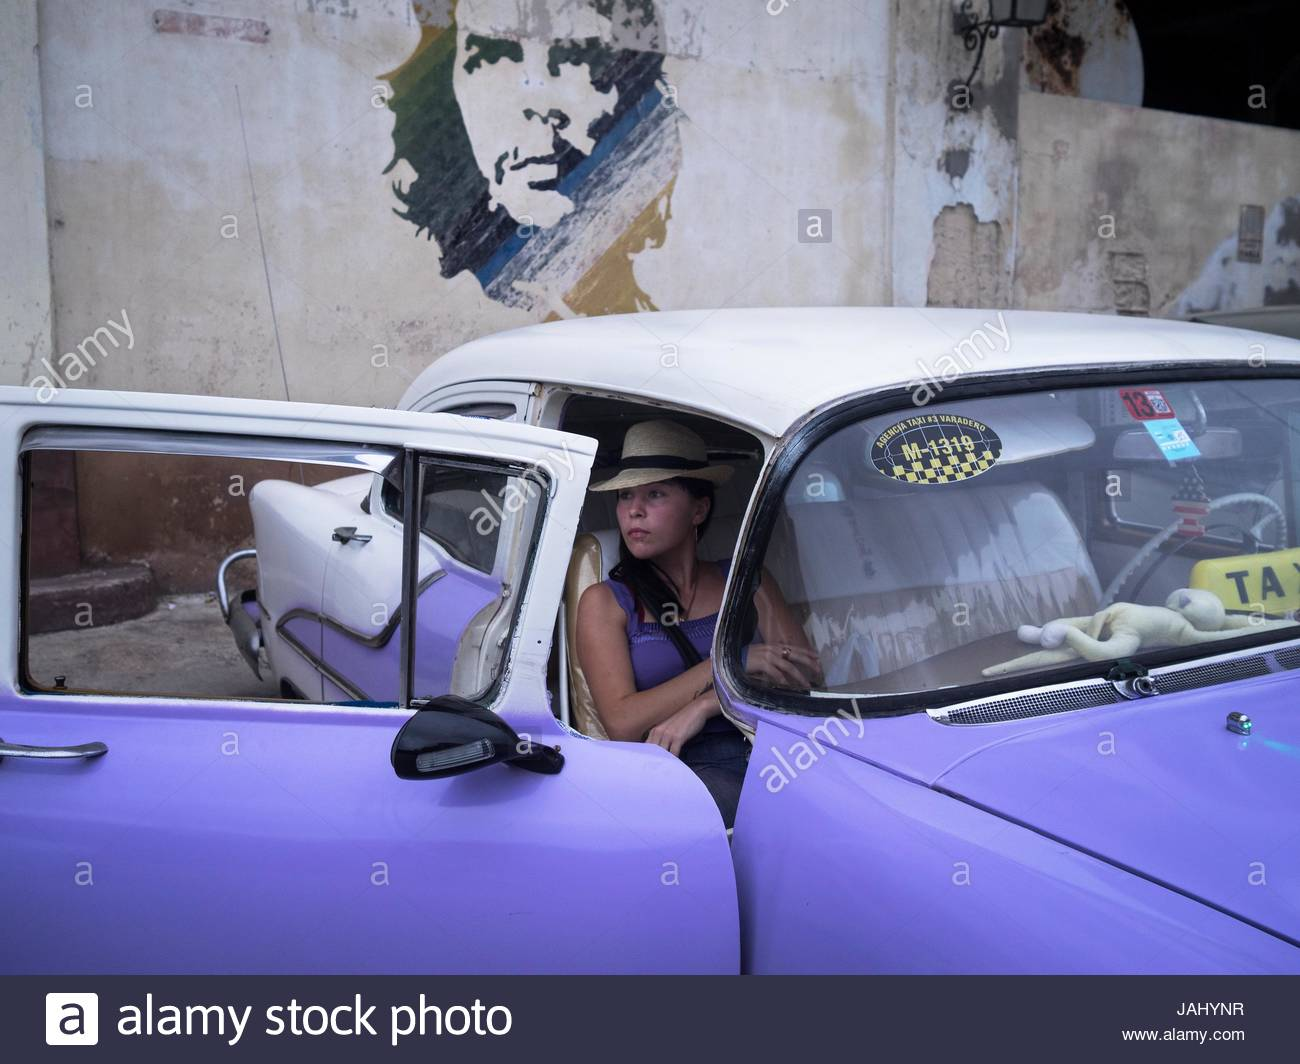 A woman sits in a taxi parked by a wall with a mural of Che Guevara. - Stock Image